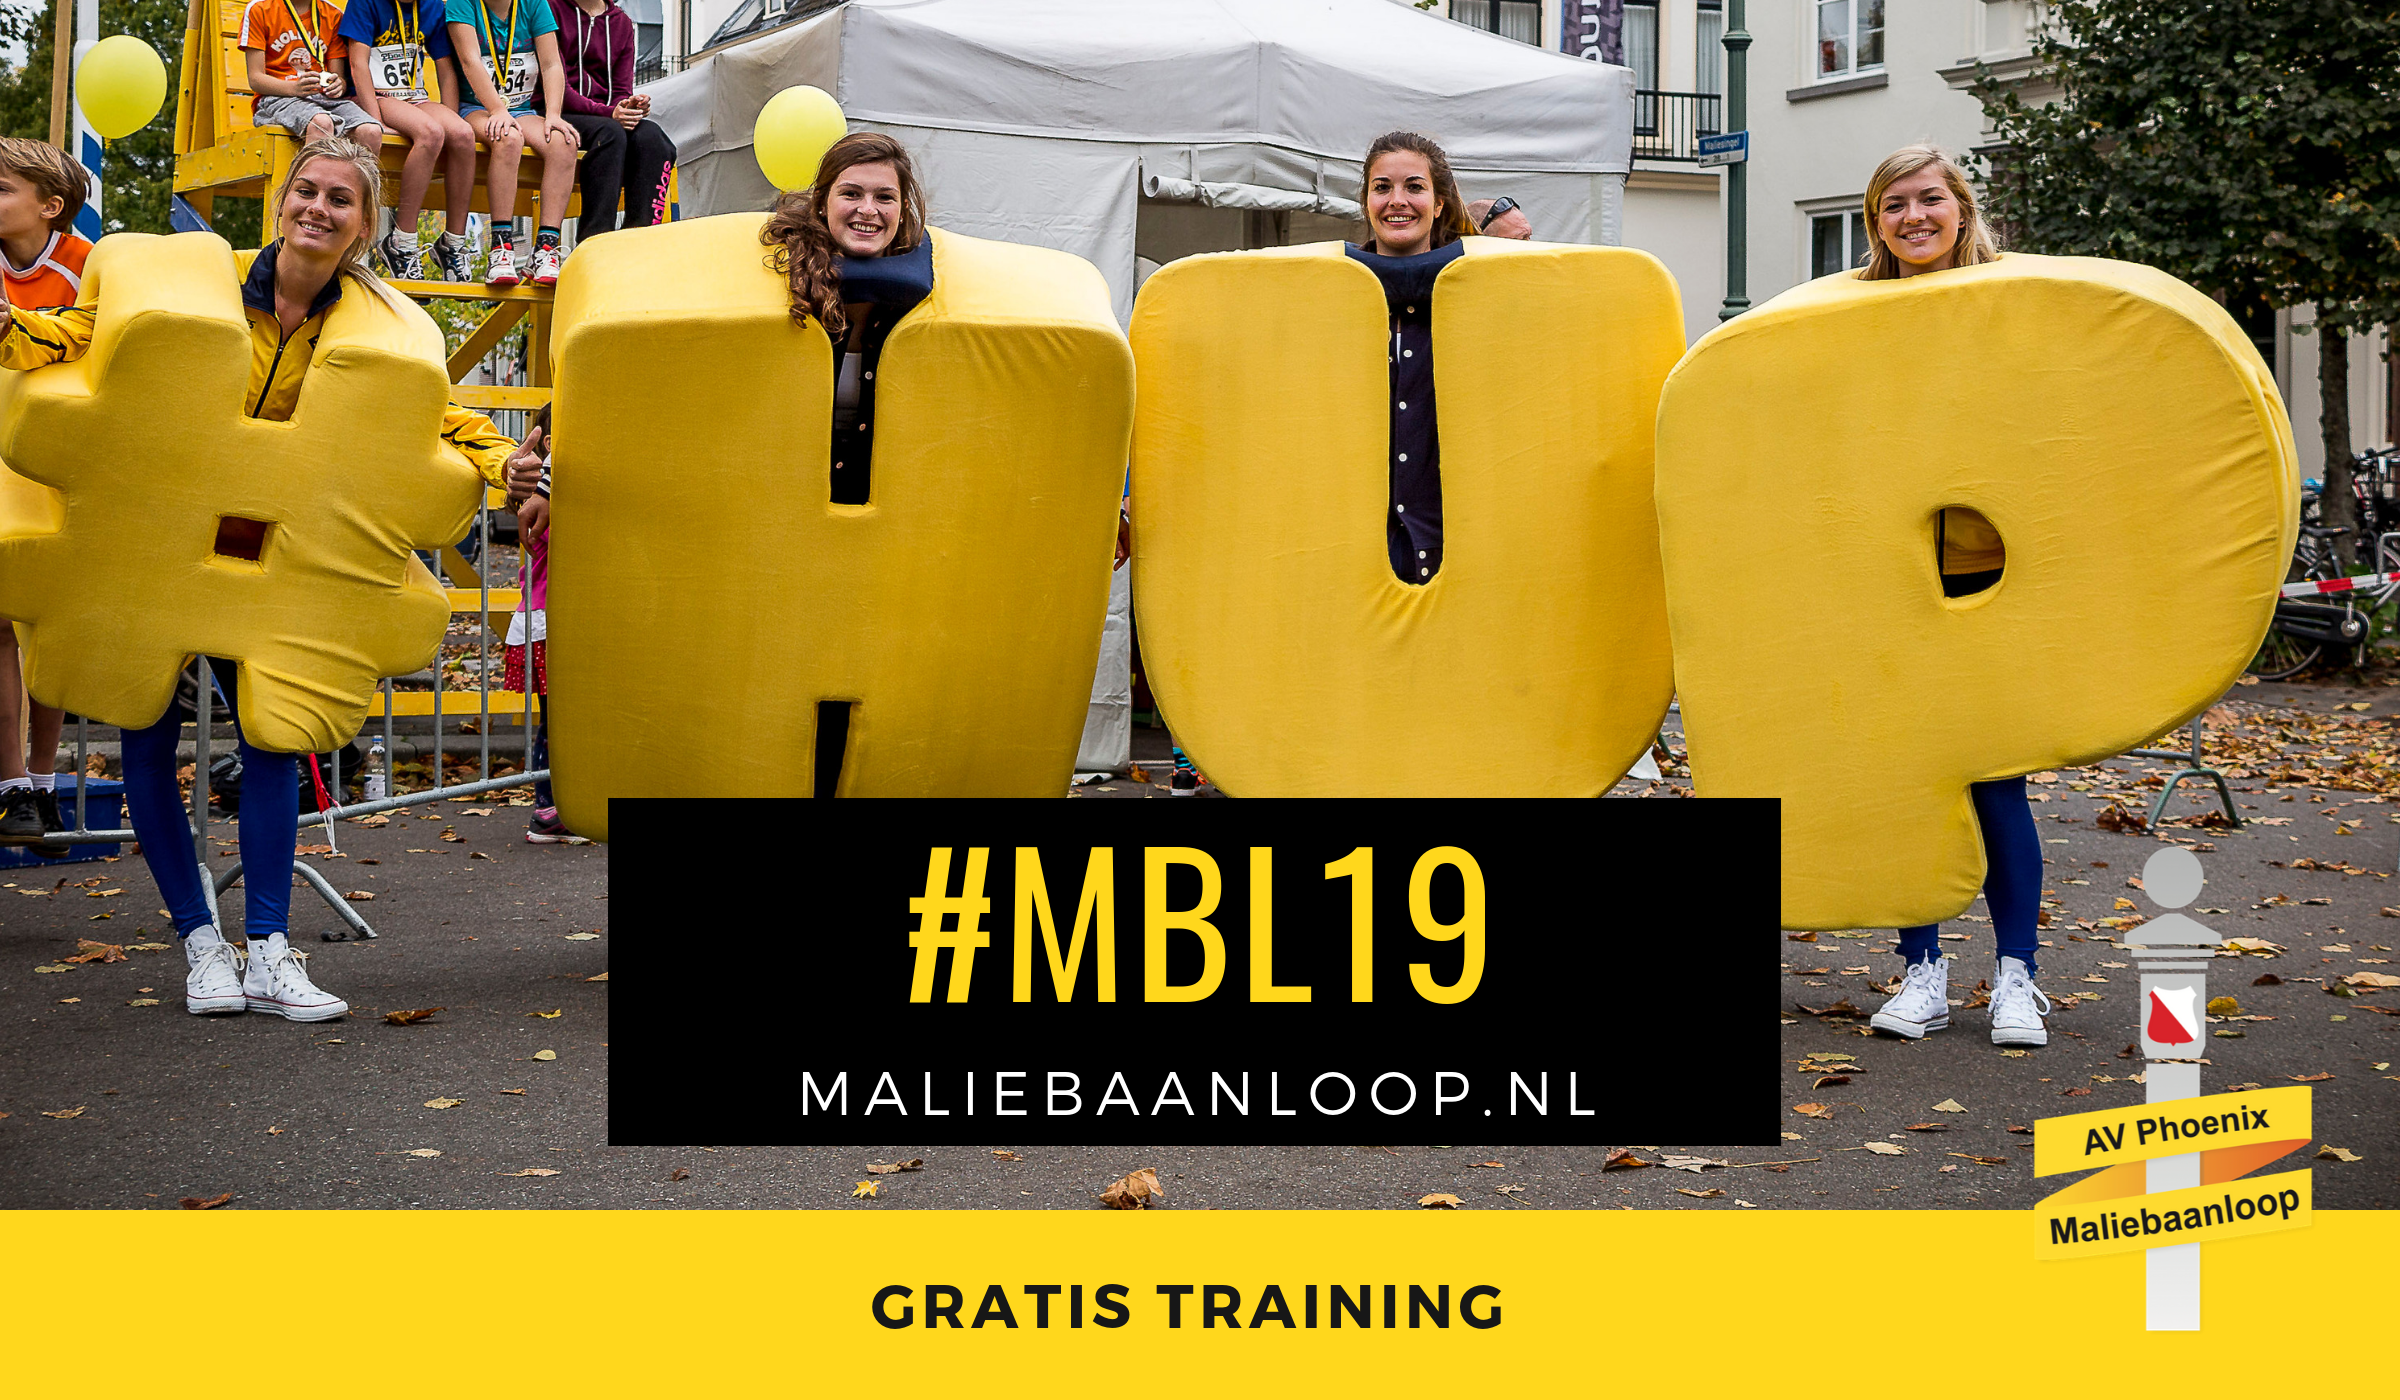 gratis training maliebaanloop